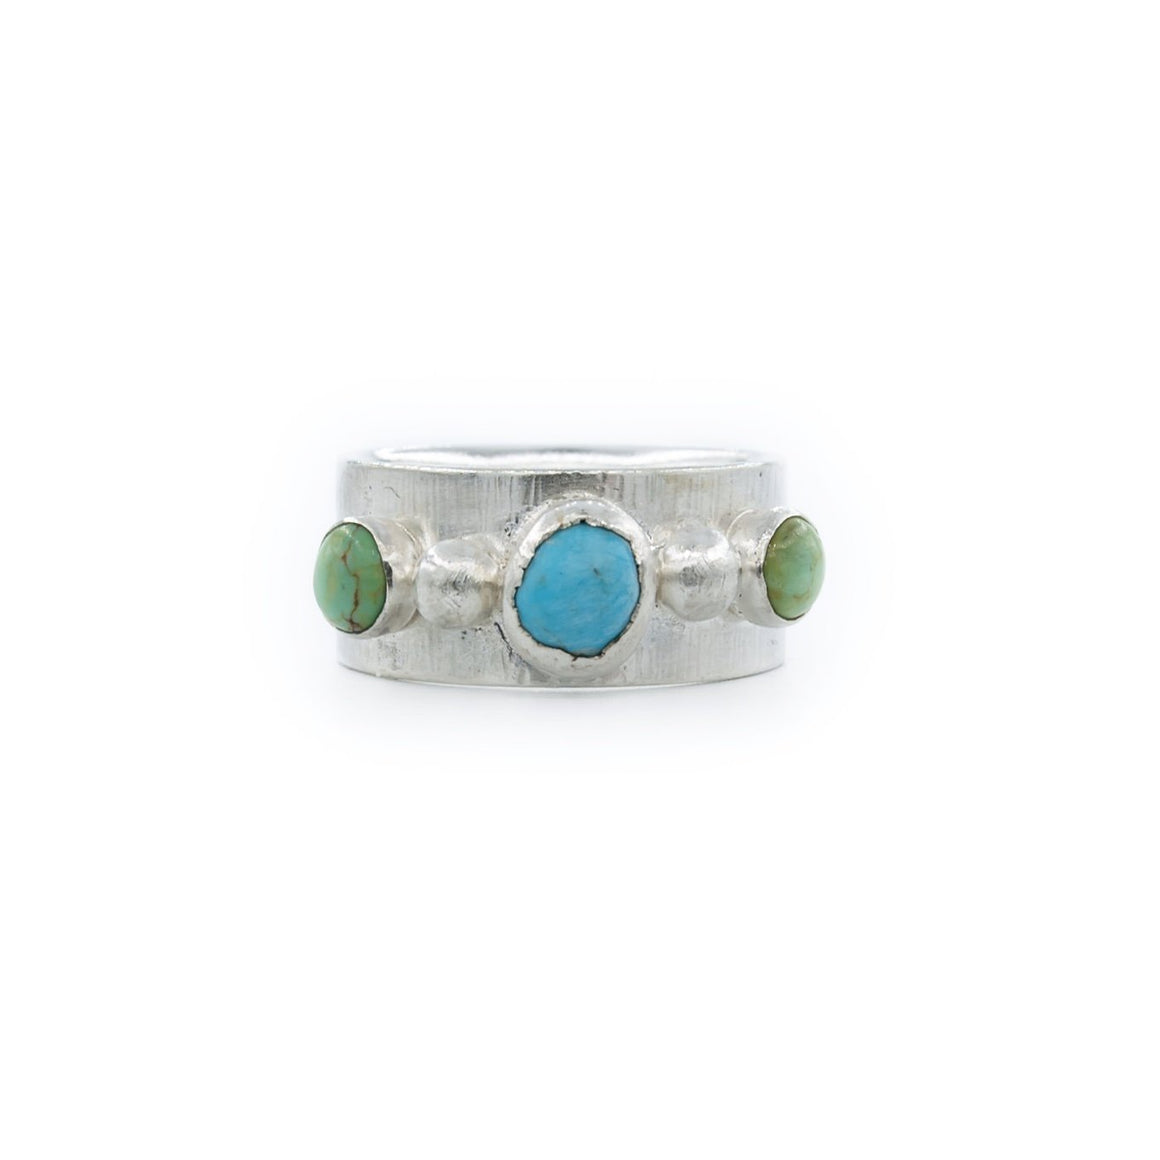 Blue and Green Turquoise Wedding Band Style Ring by OSJ